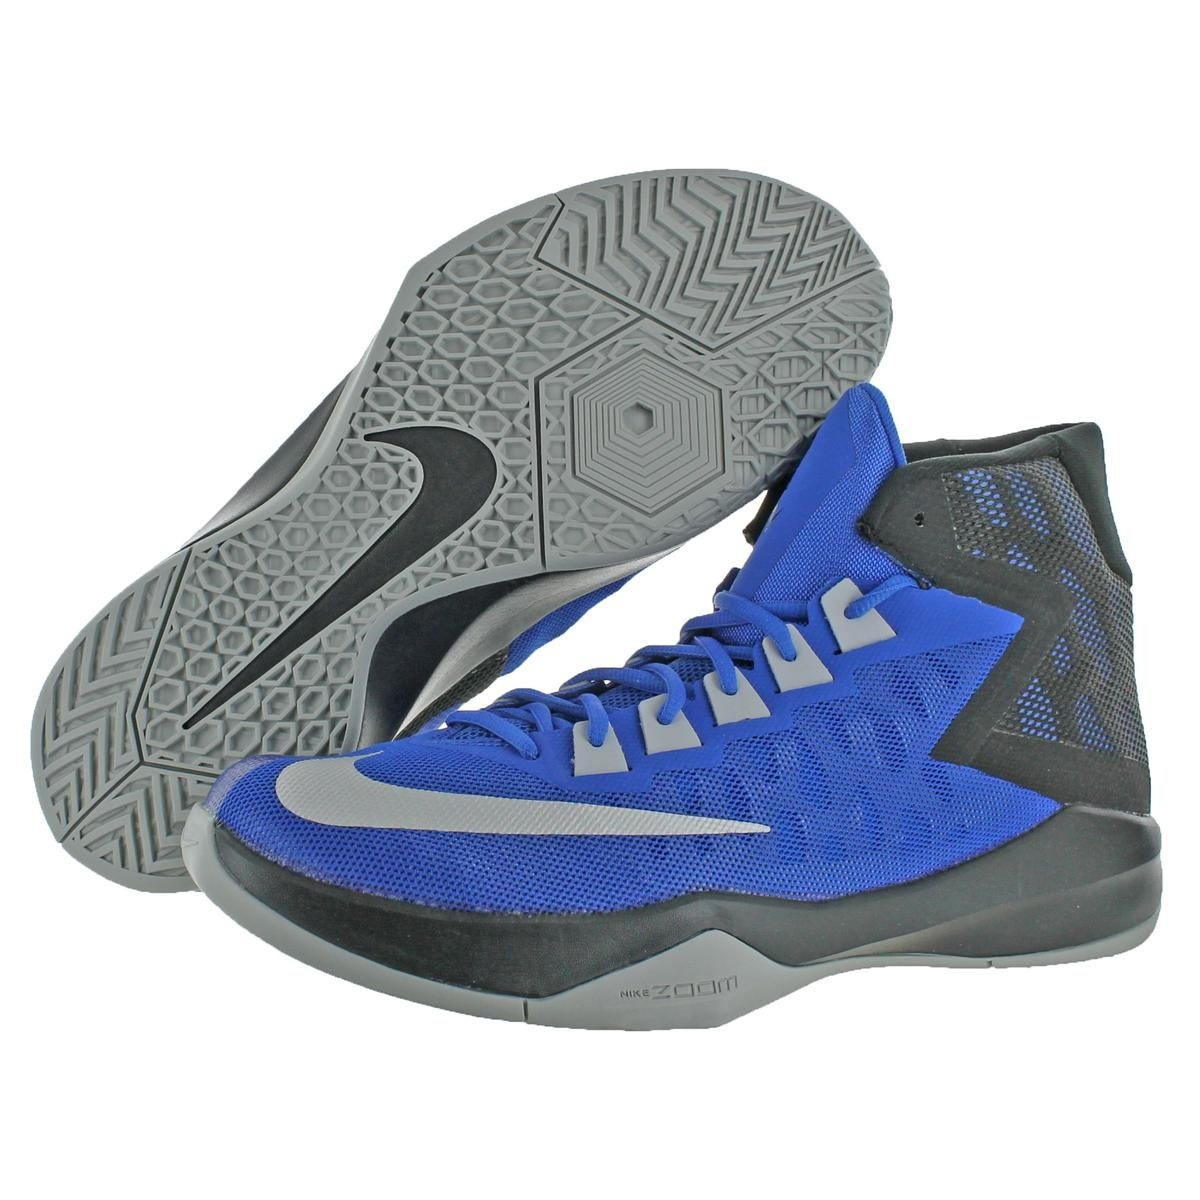 20fe14e5f44c Shop Nike Mens Zoom Devosion Basketball Shoes High Top Color block - Ships  To Canada - Overstock - 22118764